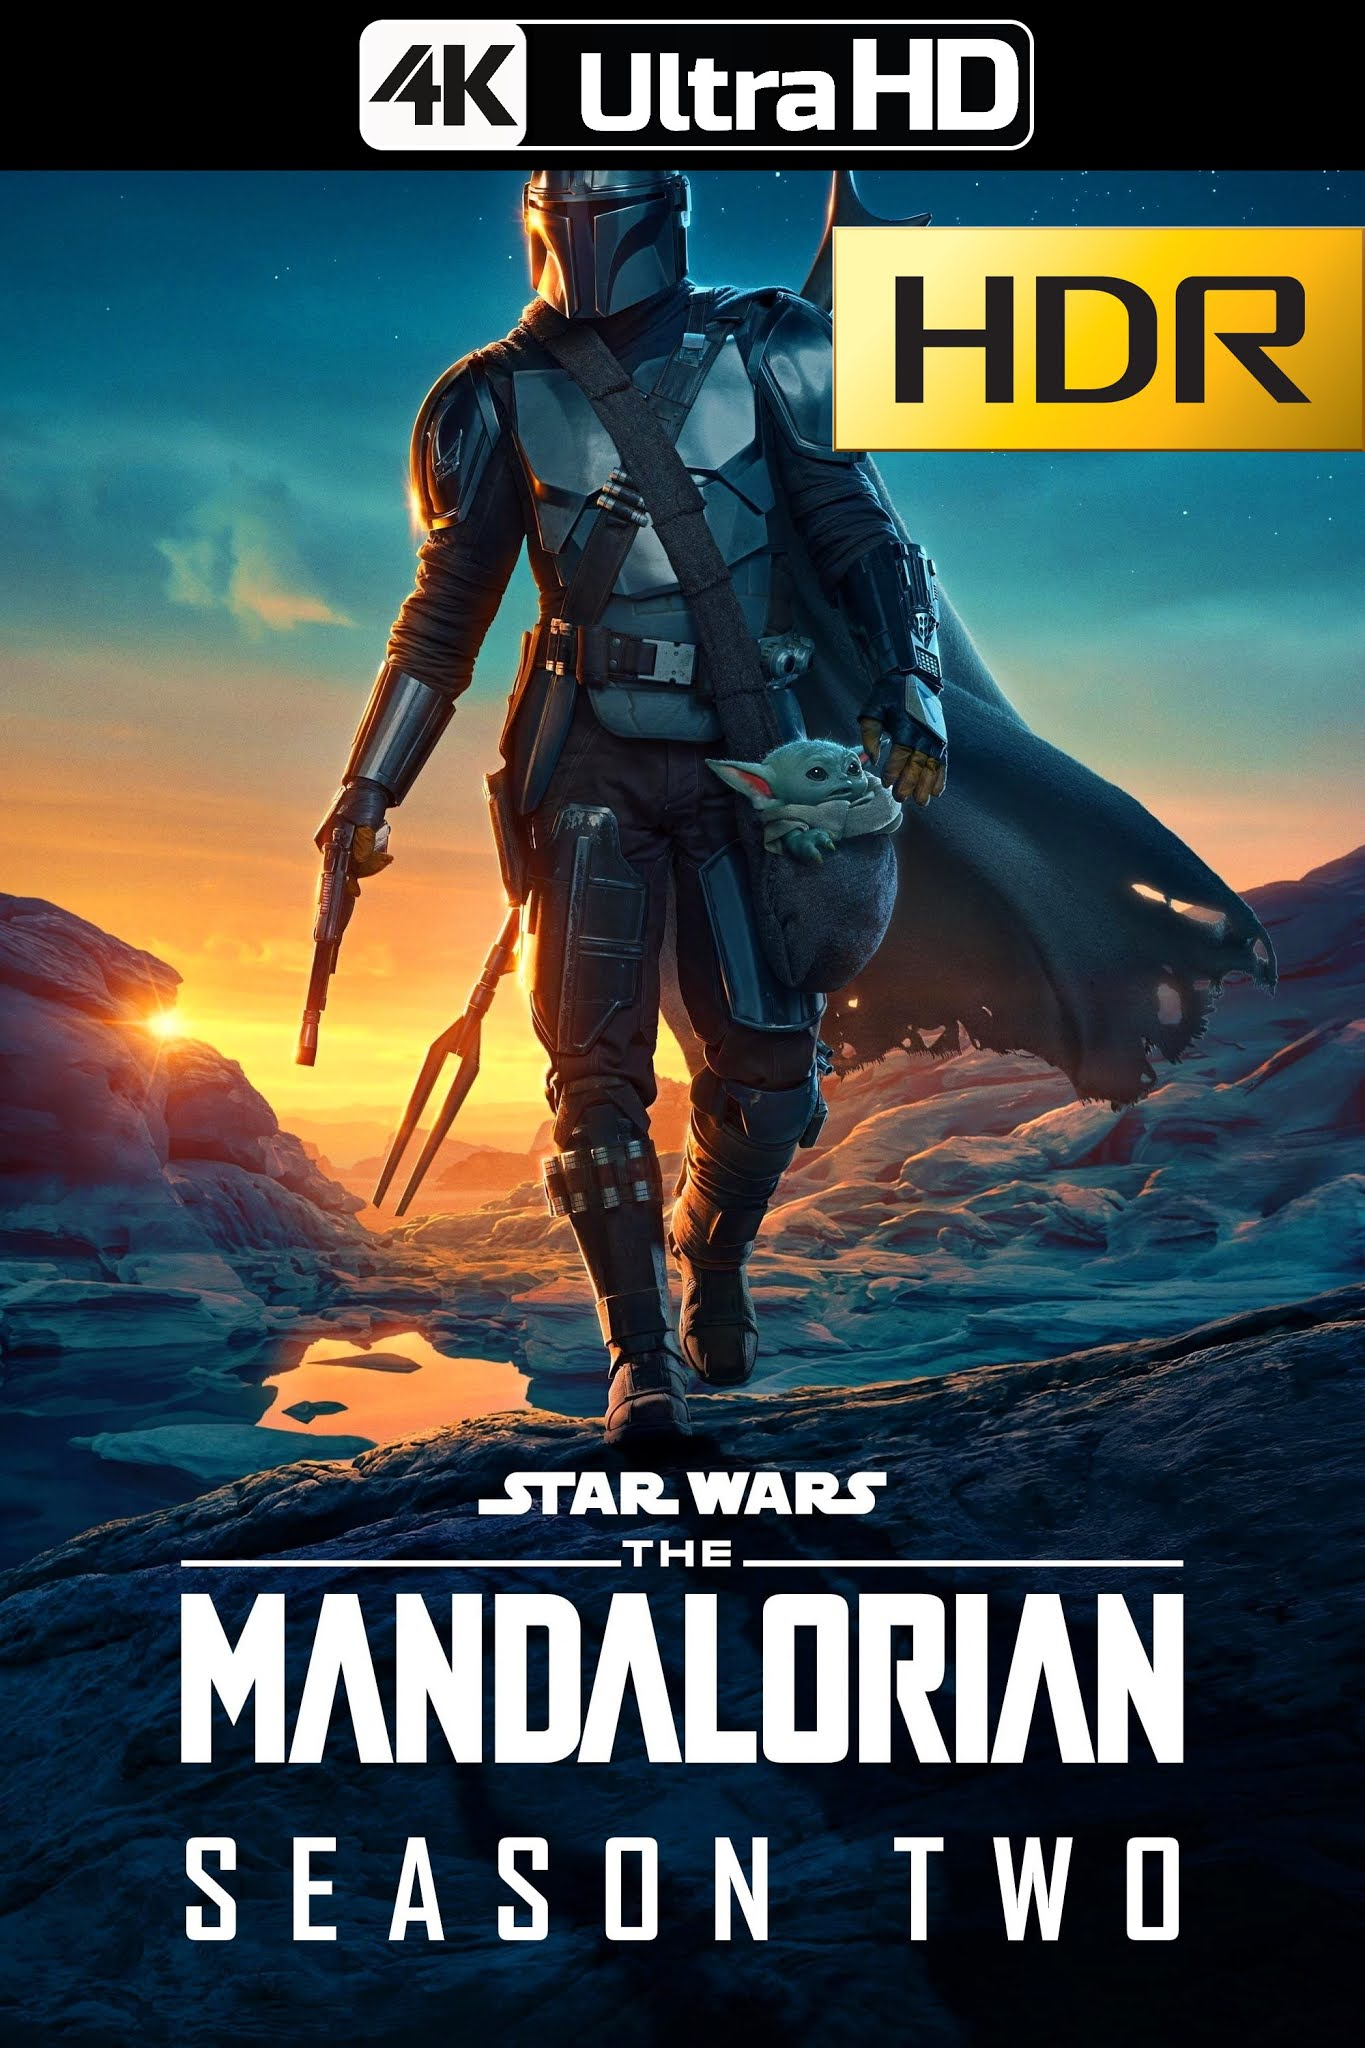 The Mandalorian (2020) Temporada 02 Web-DL 4K UHD HDR & SDR Latino